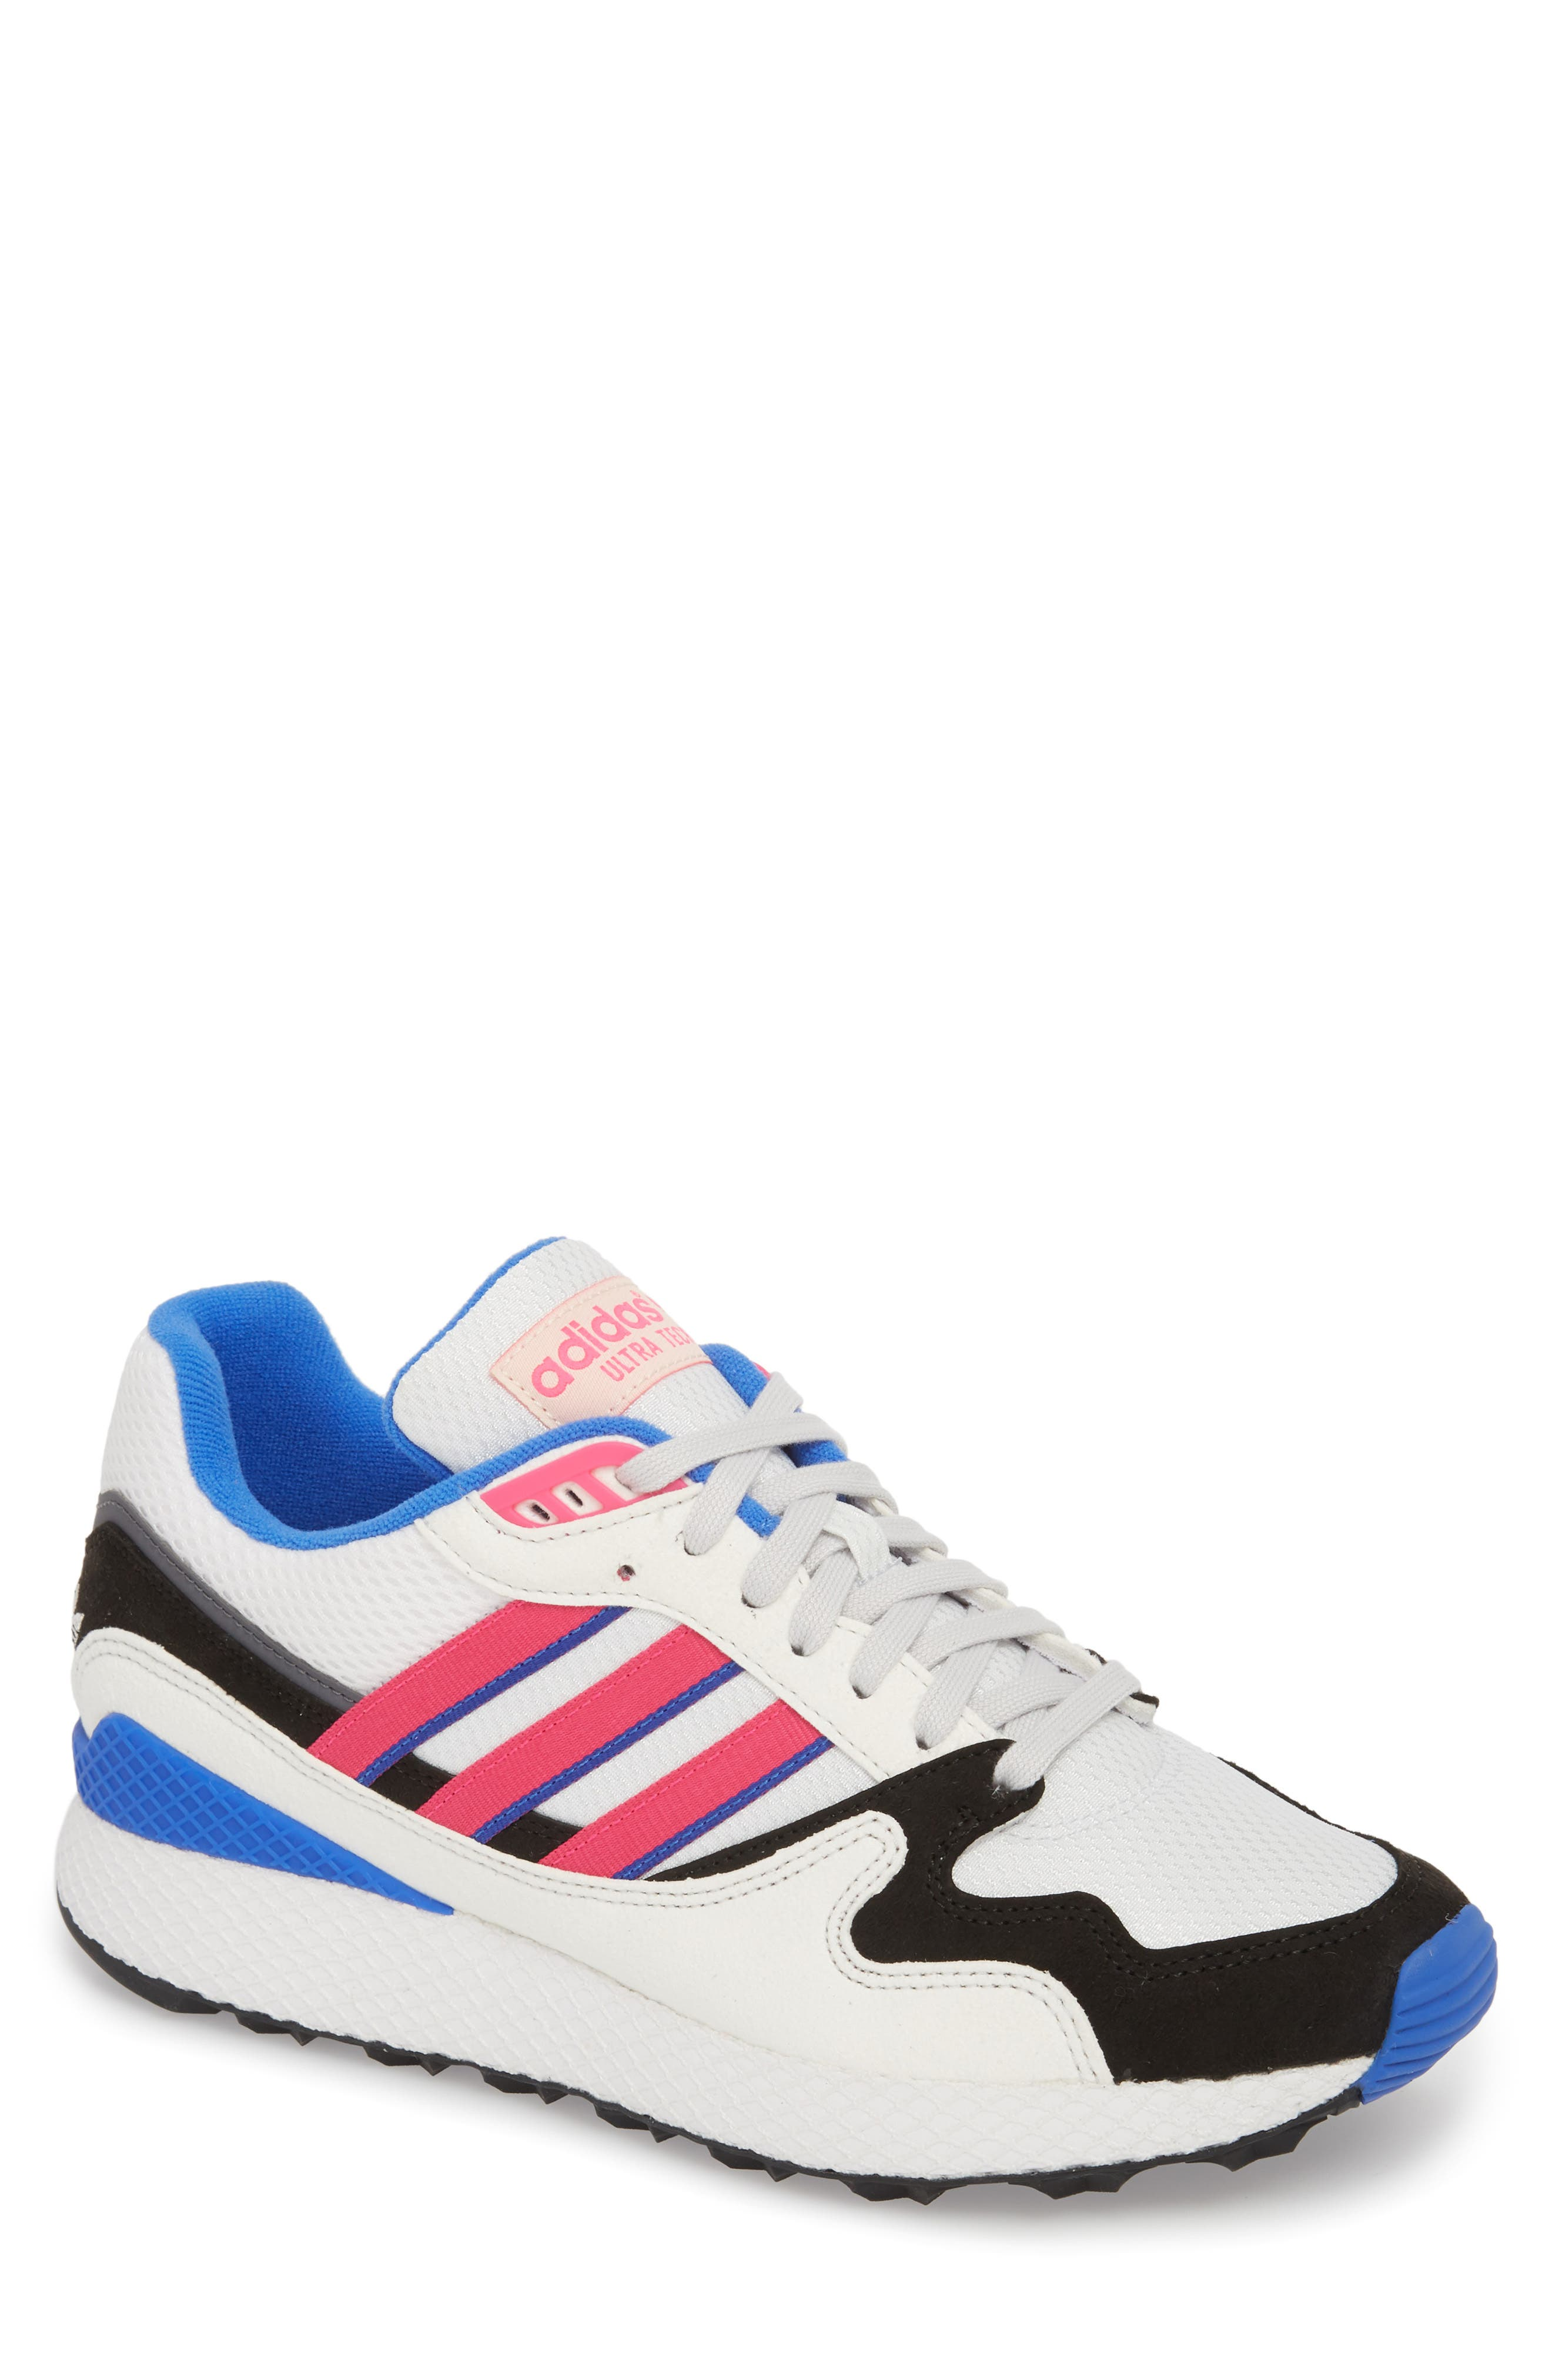 Forest Grove Ultra Tech Sneaker,                             Main thumbnail 1, color,                             Crystal White/ Pink/ Black